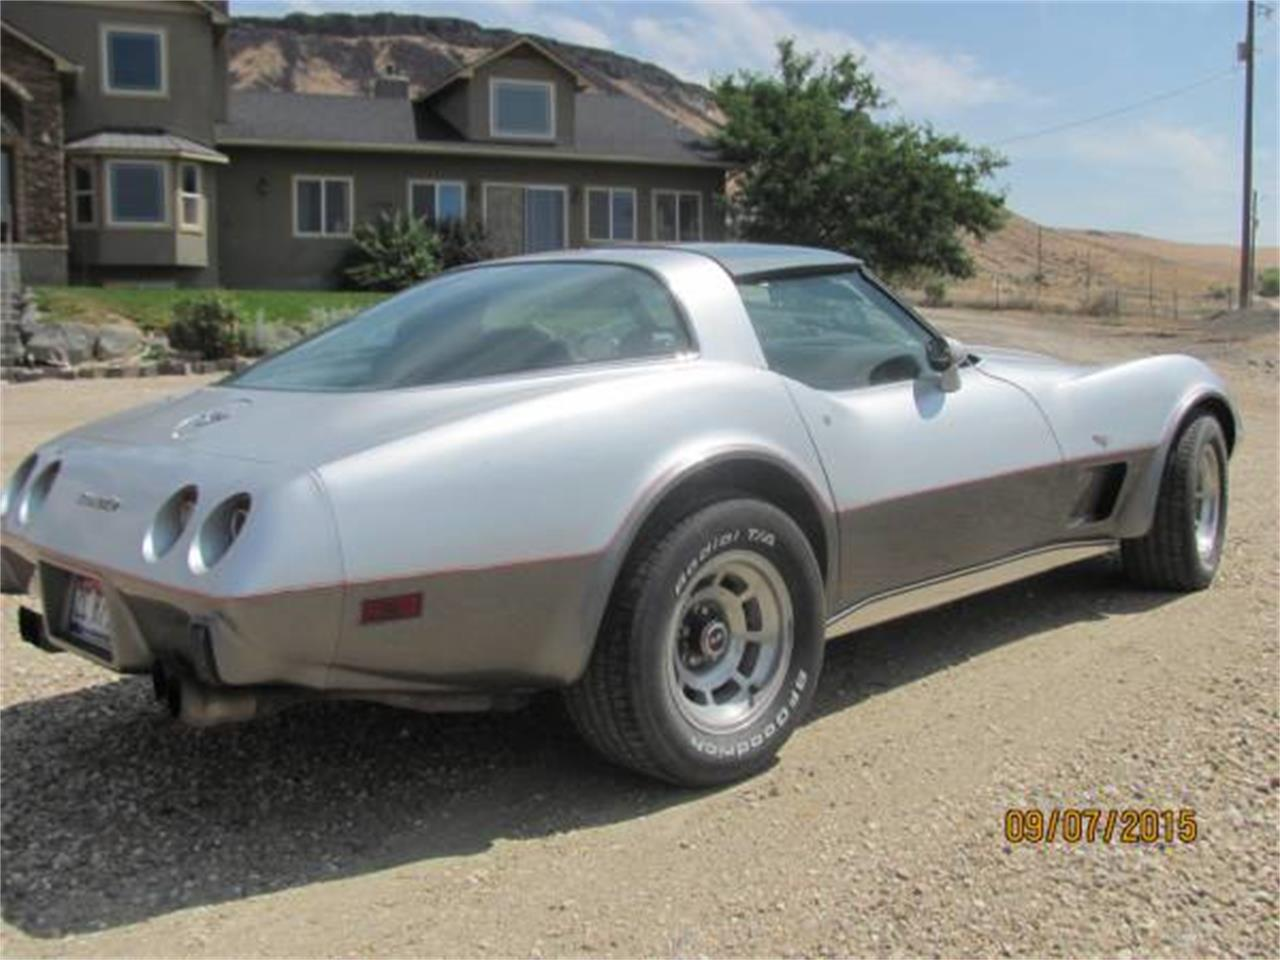 Large Picture of 1978 Chevrolet Corvette located in Idaho - $14,000.00 Offered by a Private Seller - EZ8H